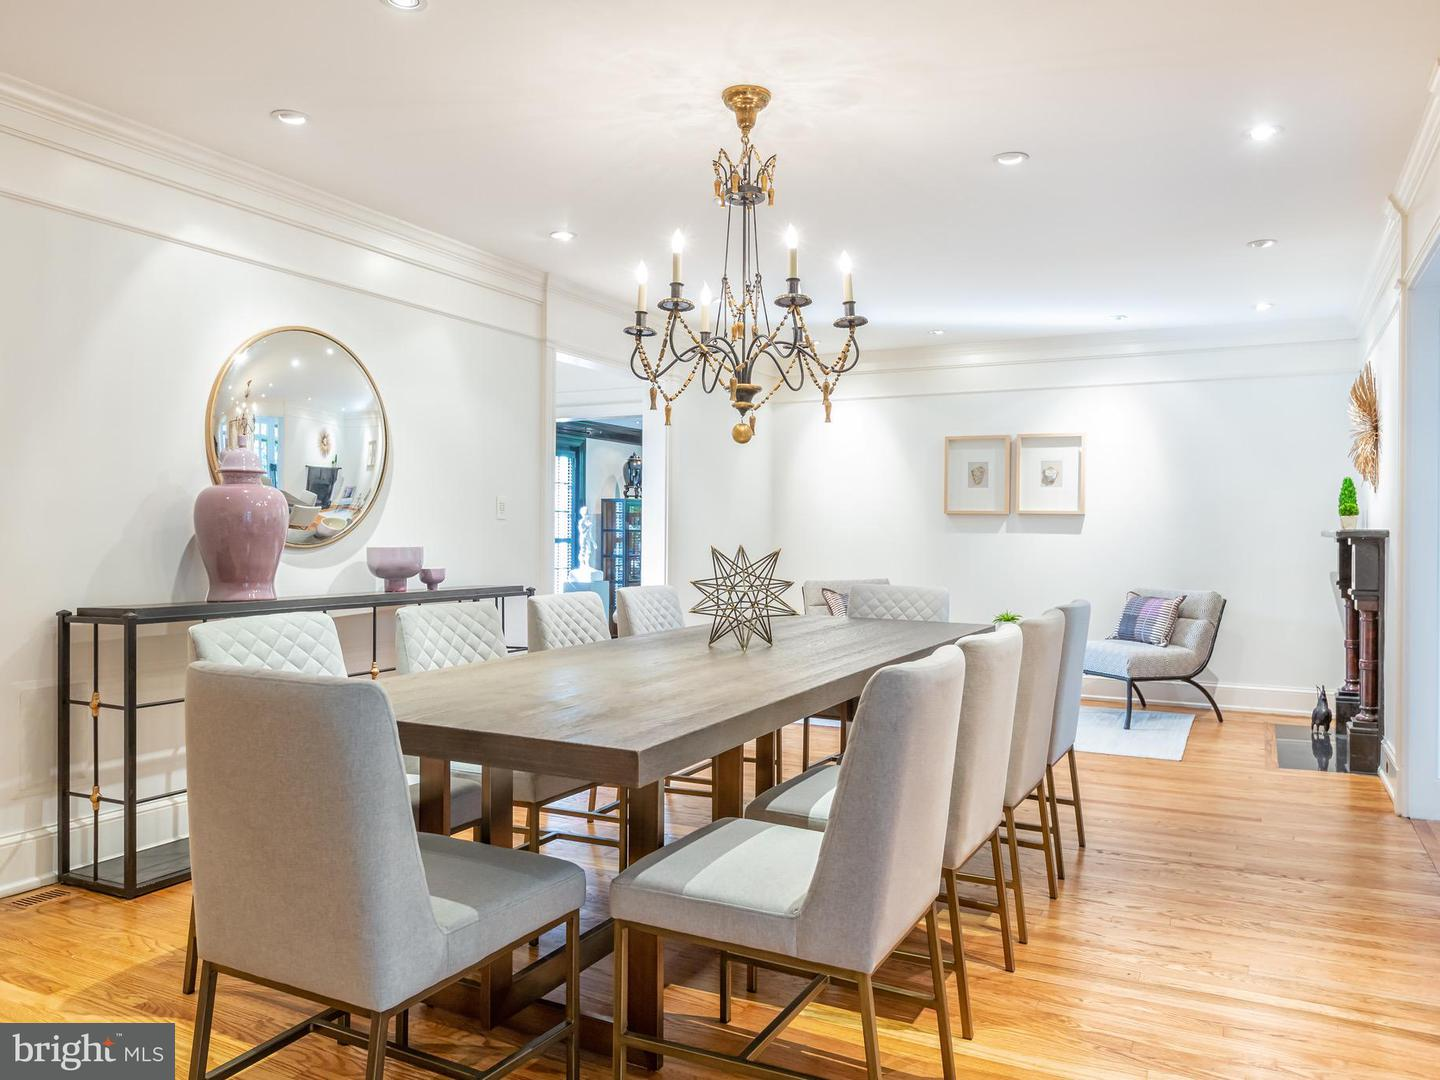 Single Family for Sale at 2845 Mcgill Ter NW Washington, District Of Columbia 20008 United States